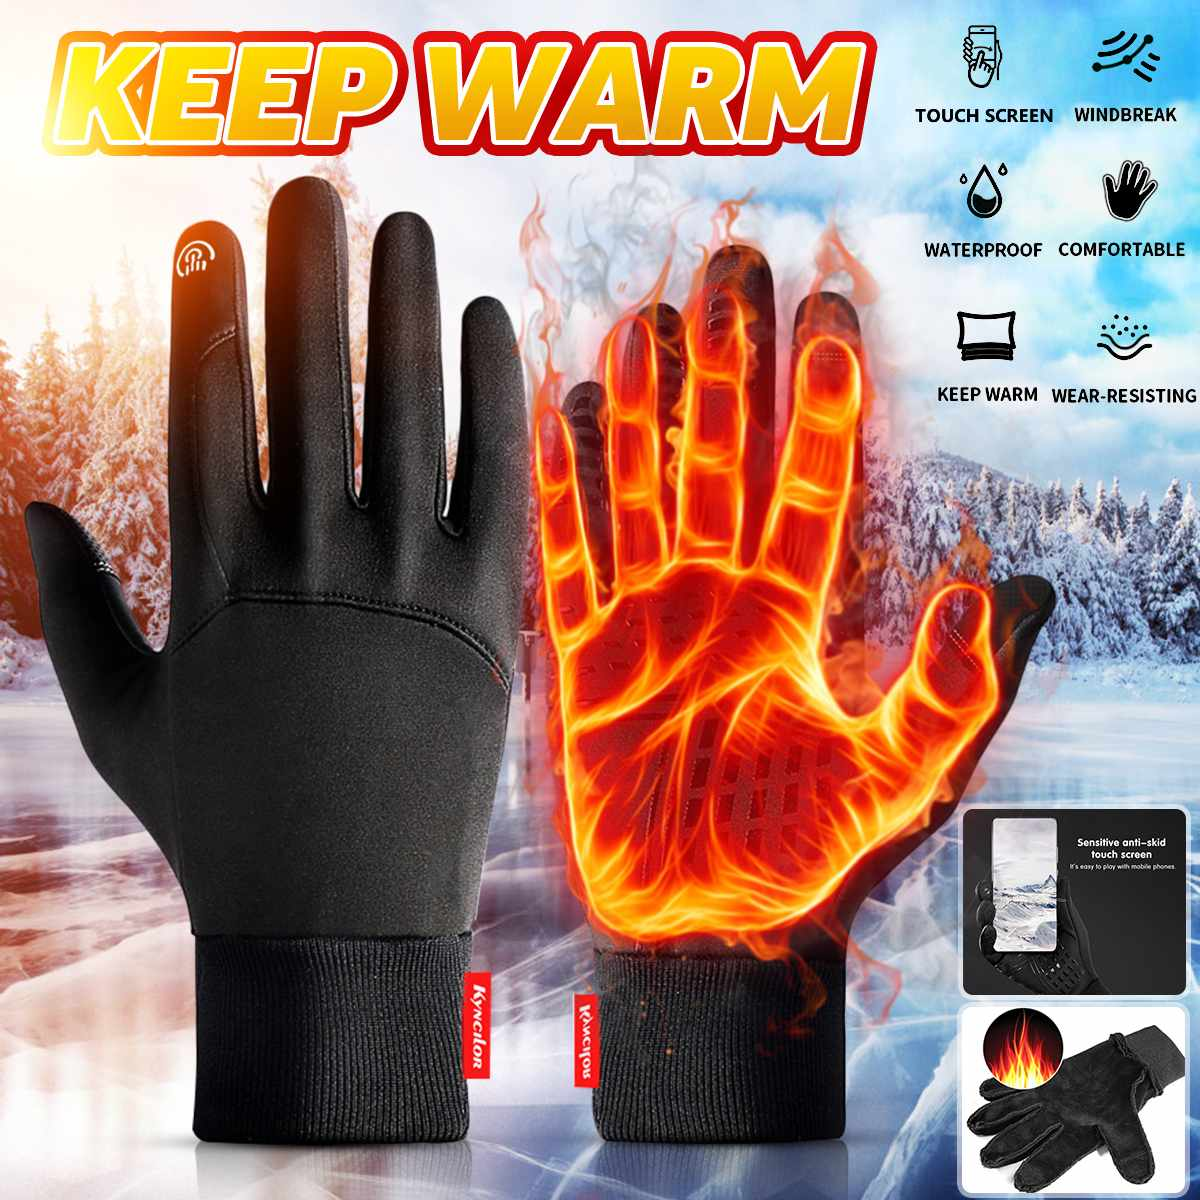 Winter Warm Gloves Touch Screen Waterproof Non-slip For Men Women Ski Snow Riding Outdoor Sports Car Auto Motorcycle